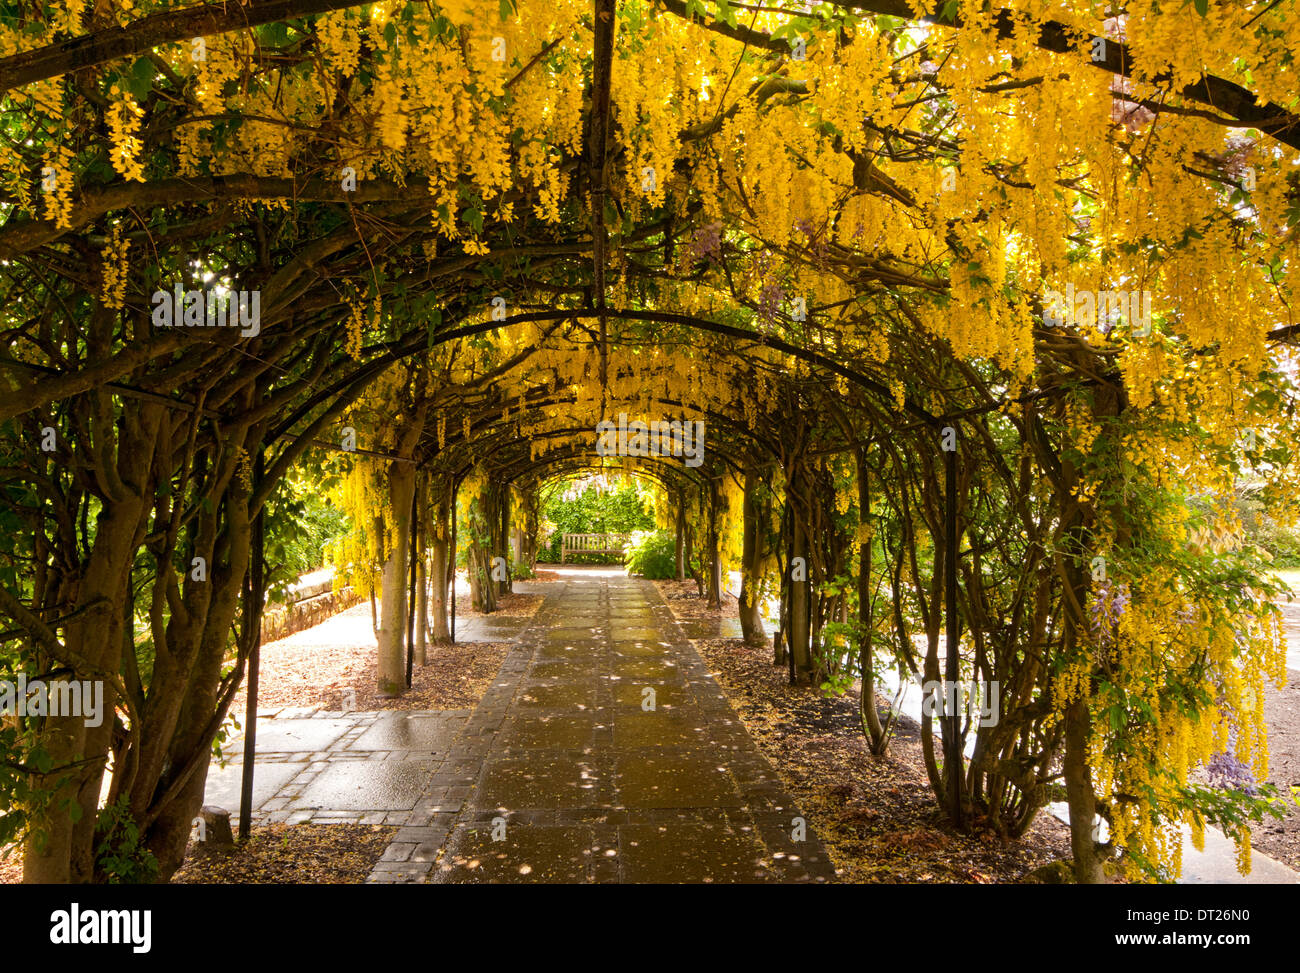 The Laburnum Arch, Ness Botanical Gardens, The Wirral,  Merseyside, England, UK - Stock Image